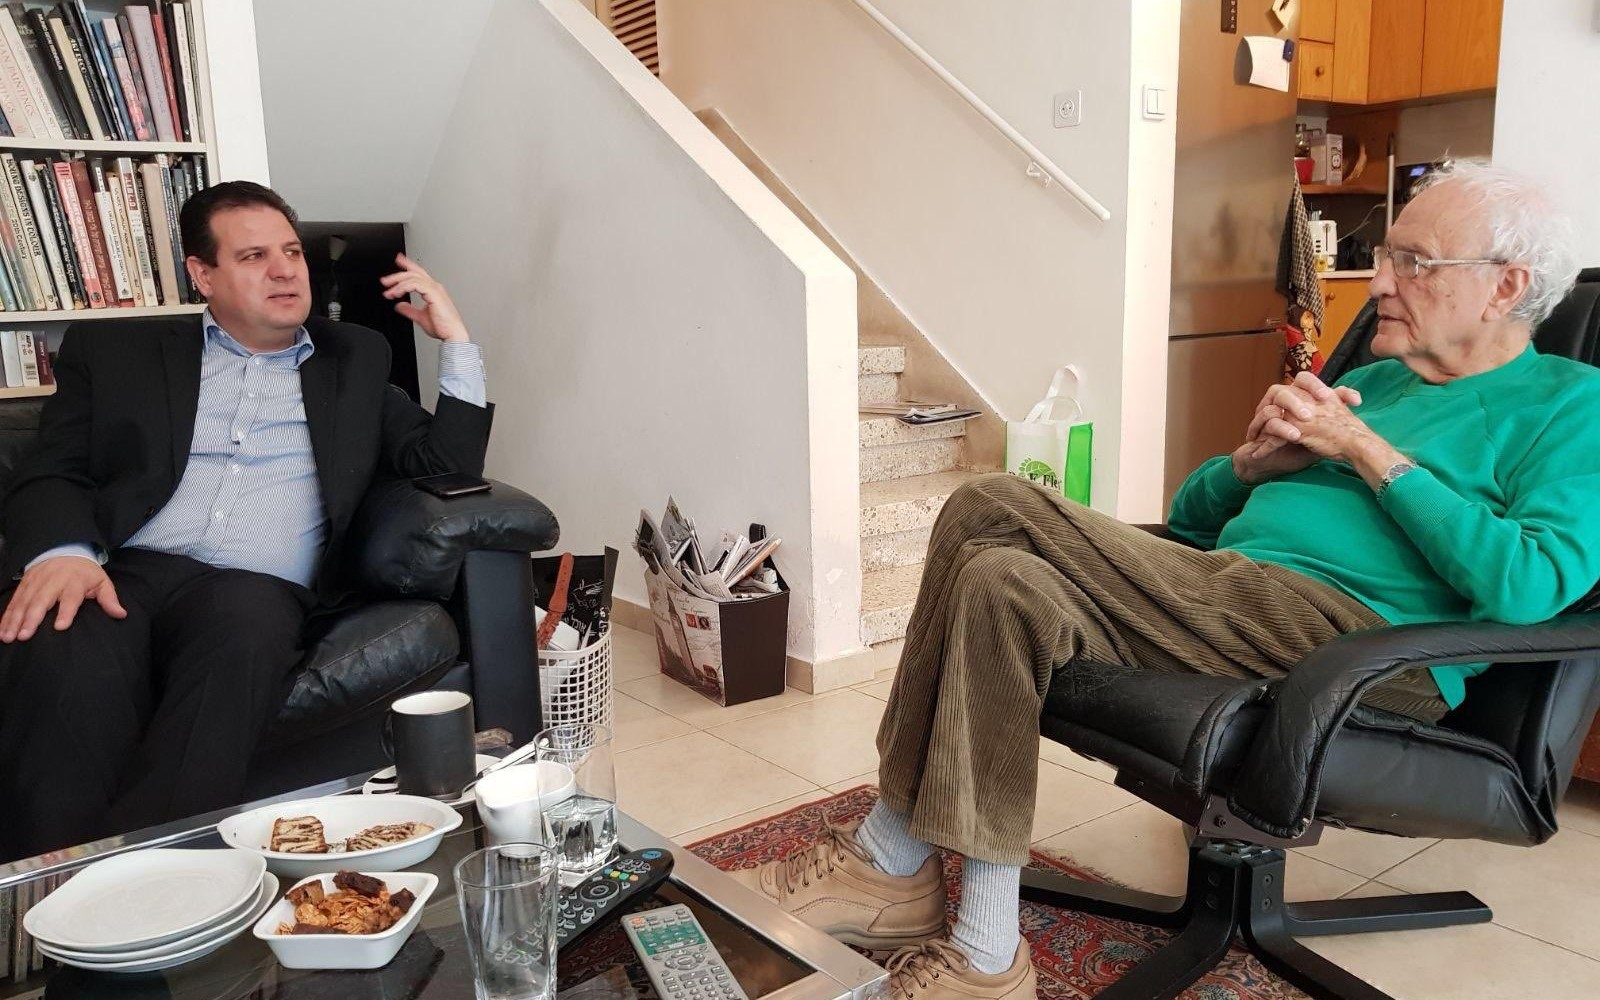 MK Ayman Odeh, head of the Joint List, (left) meets with Zeev Sternhell at the home of the late Israeli historian and political scientist's in 2017.